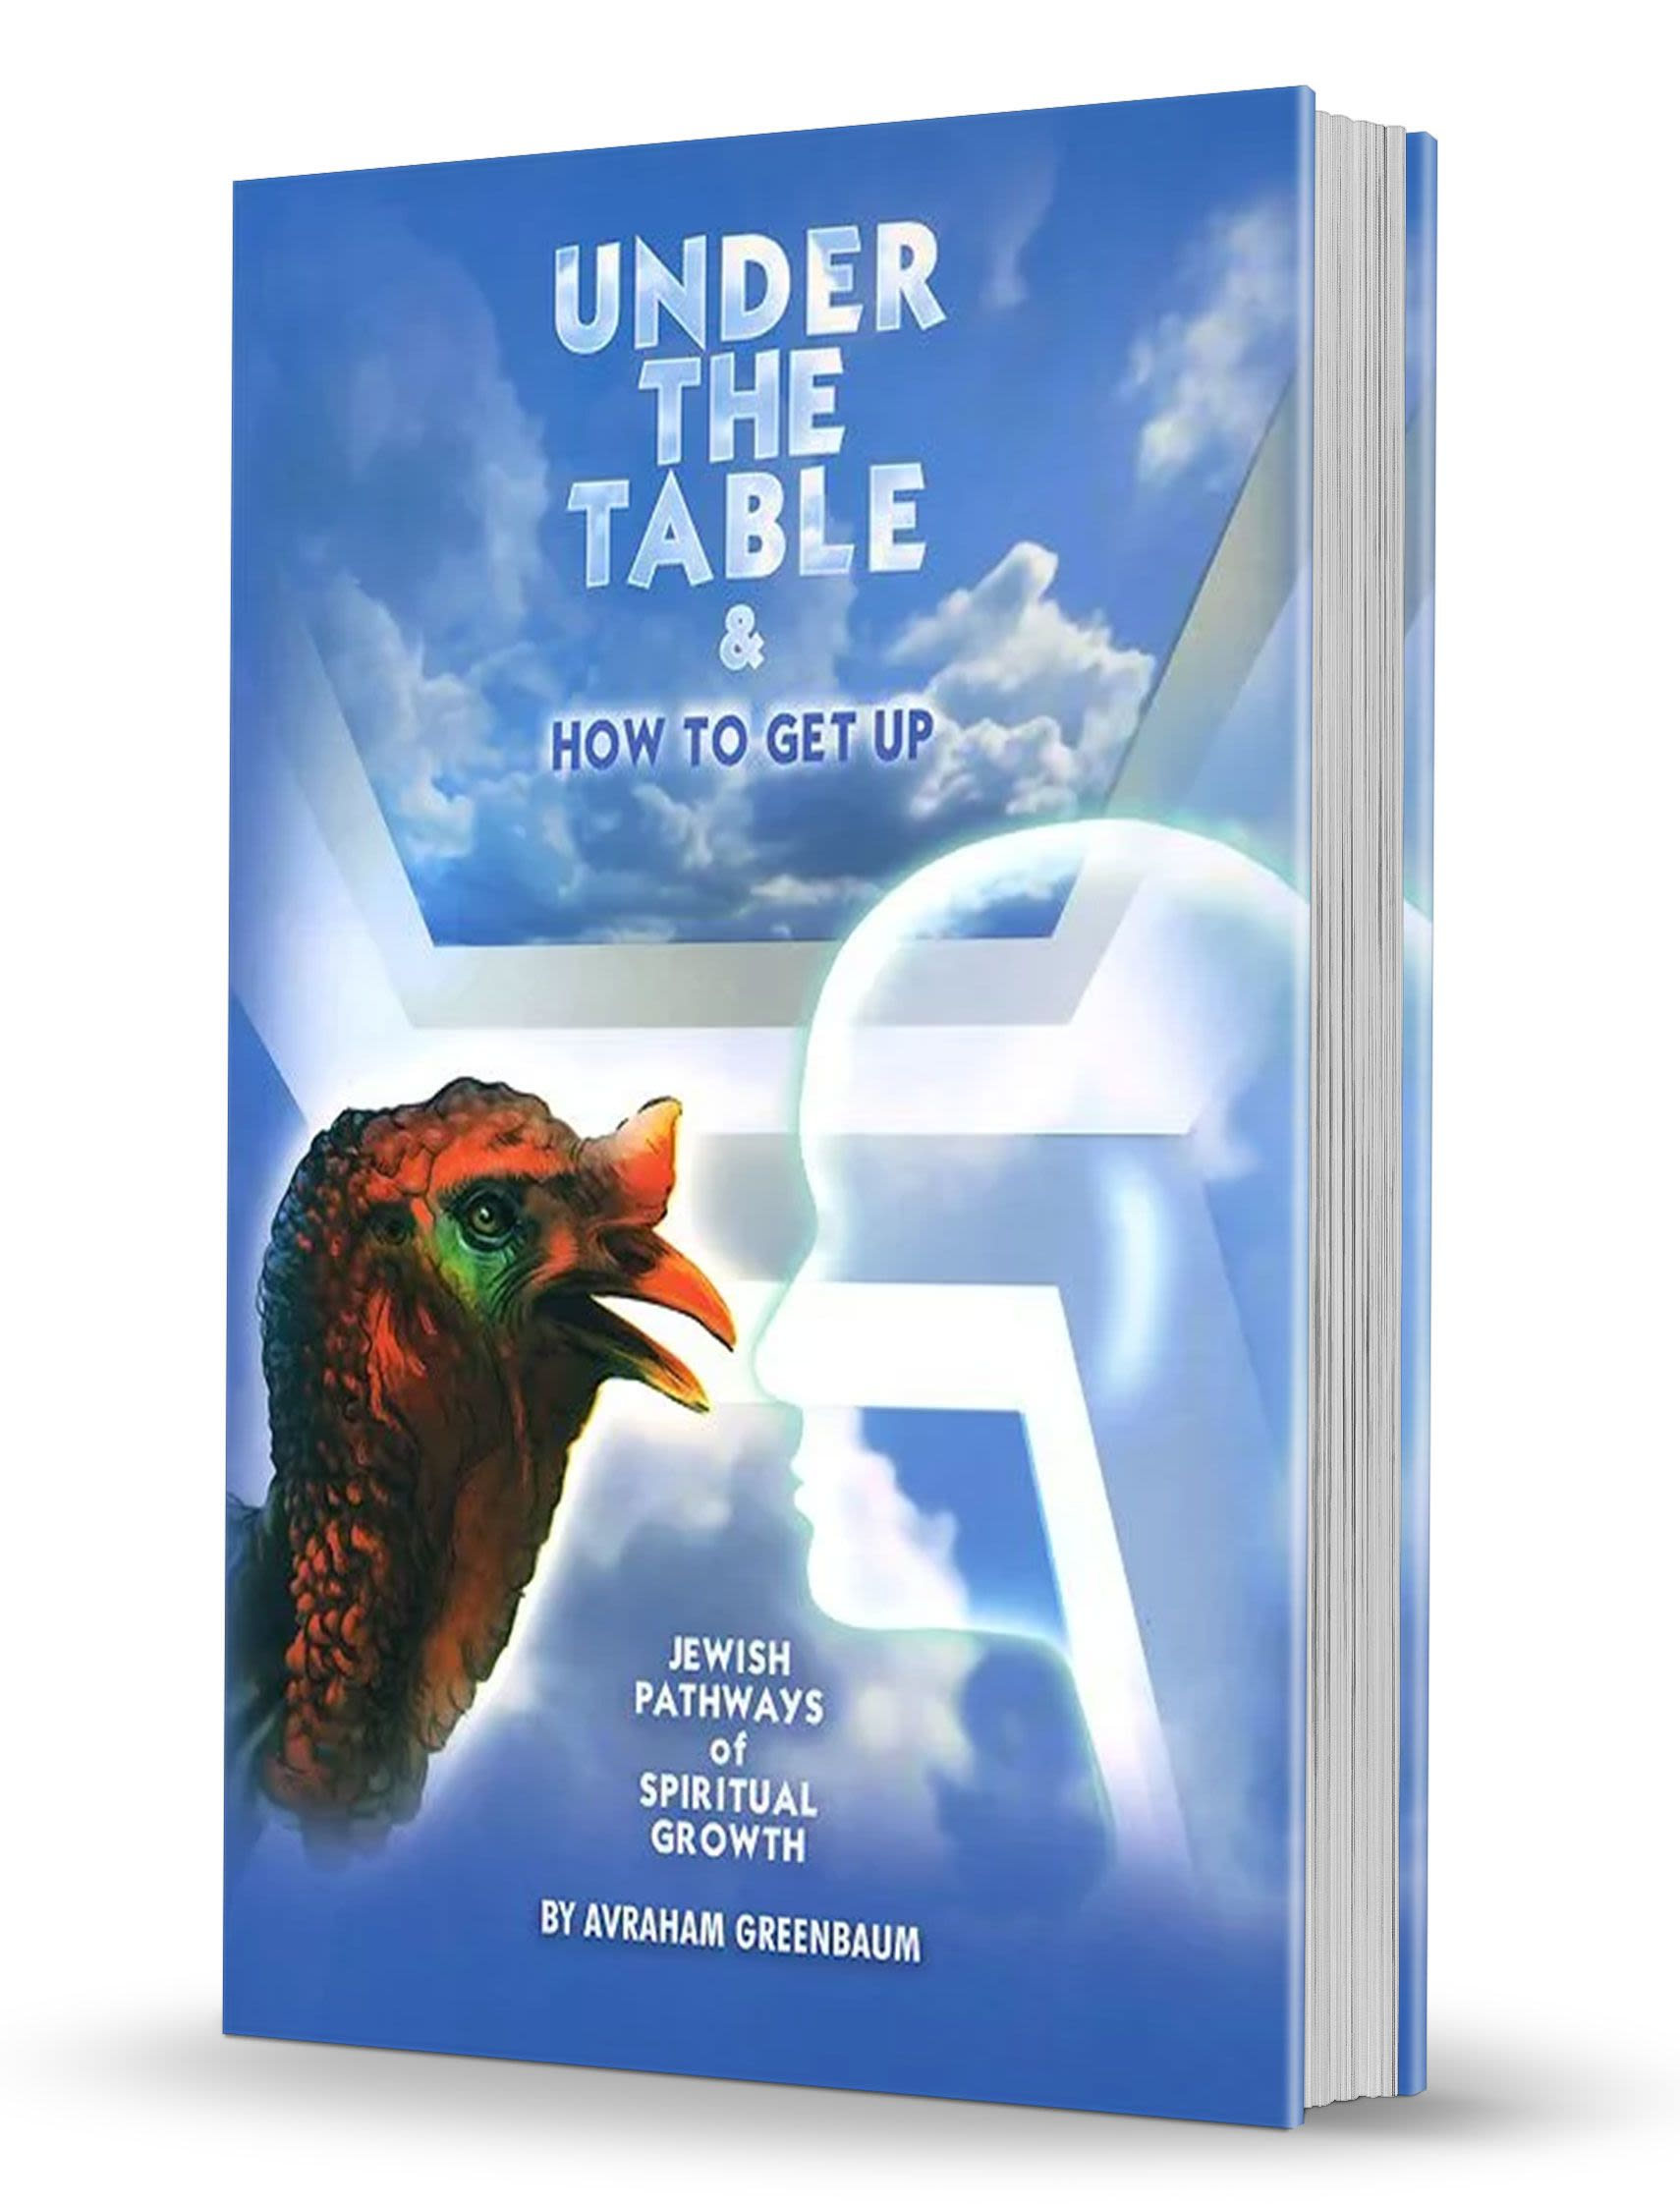 Under the Table & How to Get Up